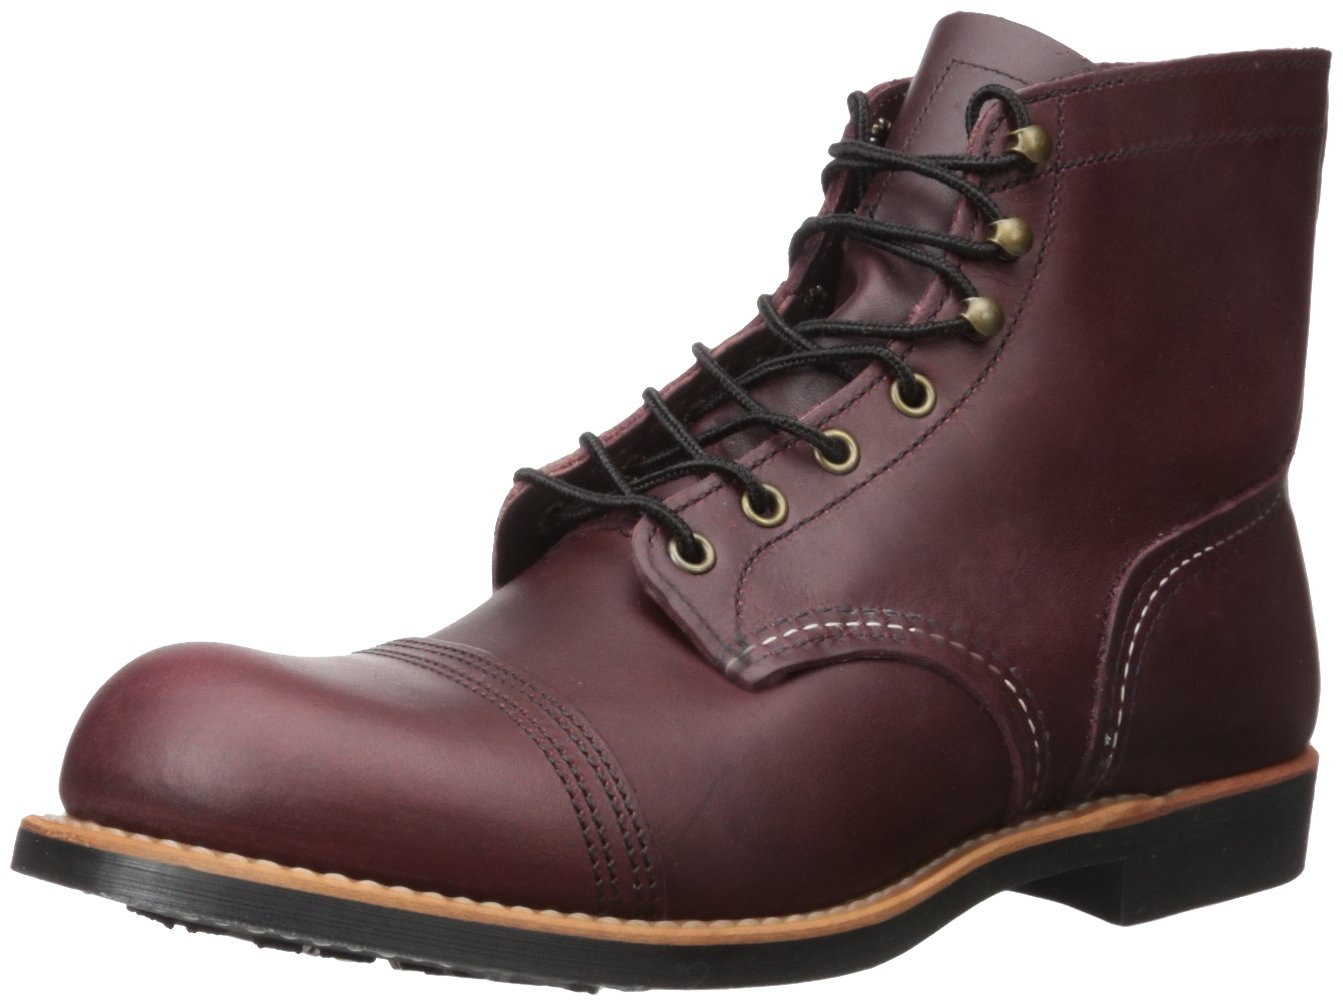 Red Wing Heritage Iron Ranger 6-Inch Boot, Oxblood Mesa, 7.5 D(M) US